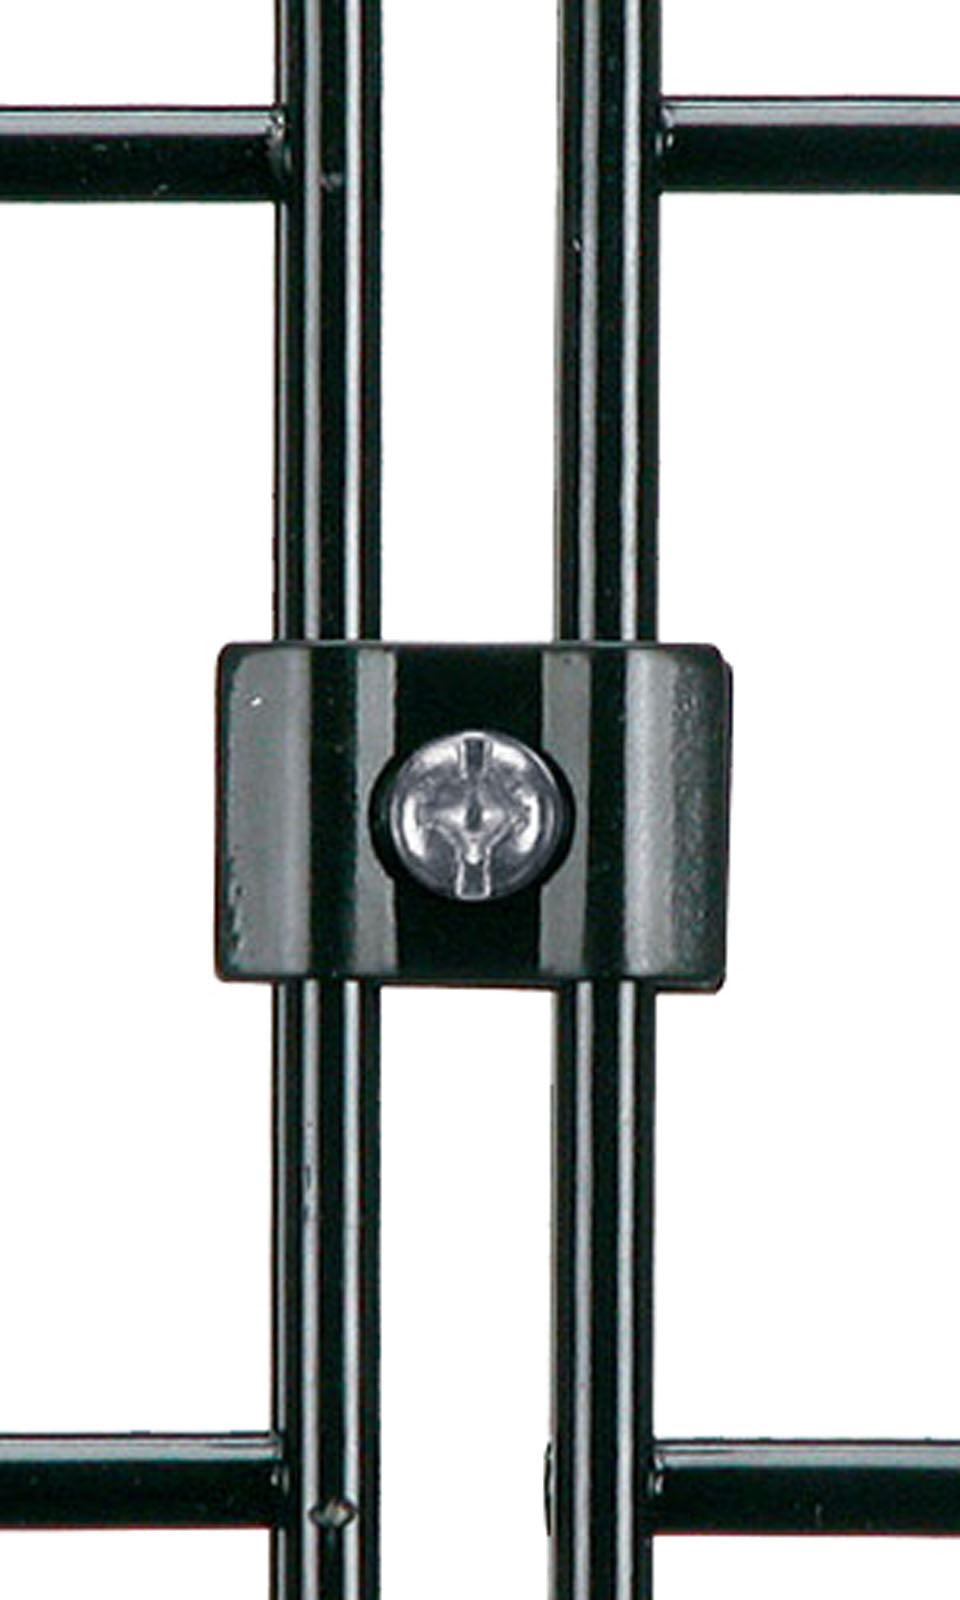 OUTLET GROENLO dubbele montageclip 5 mm groen- RVS schroef